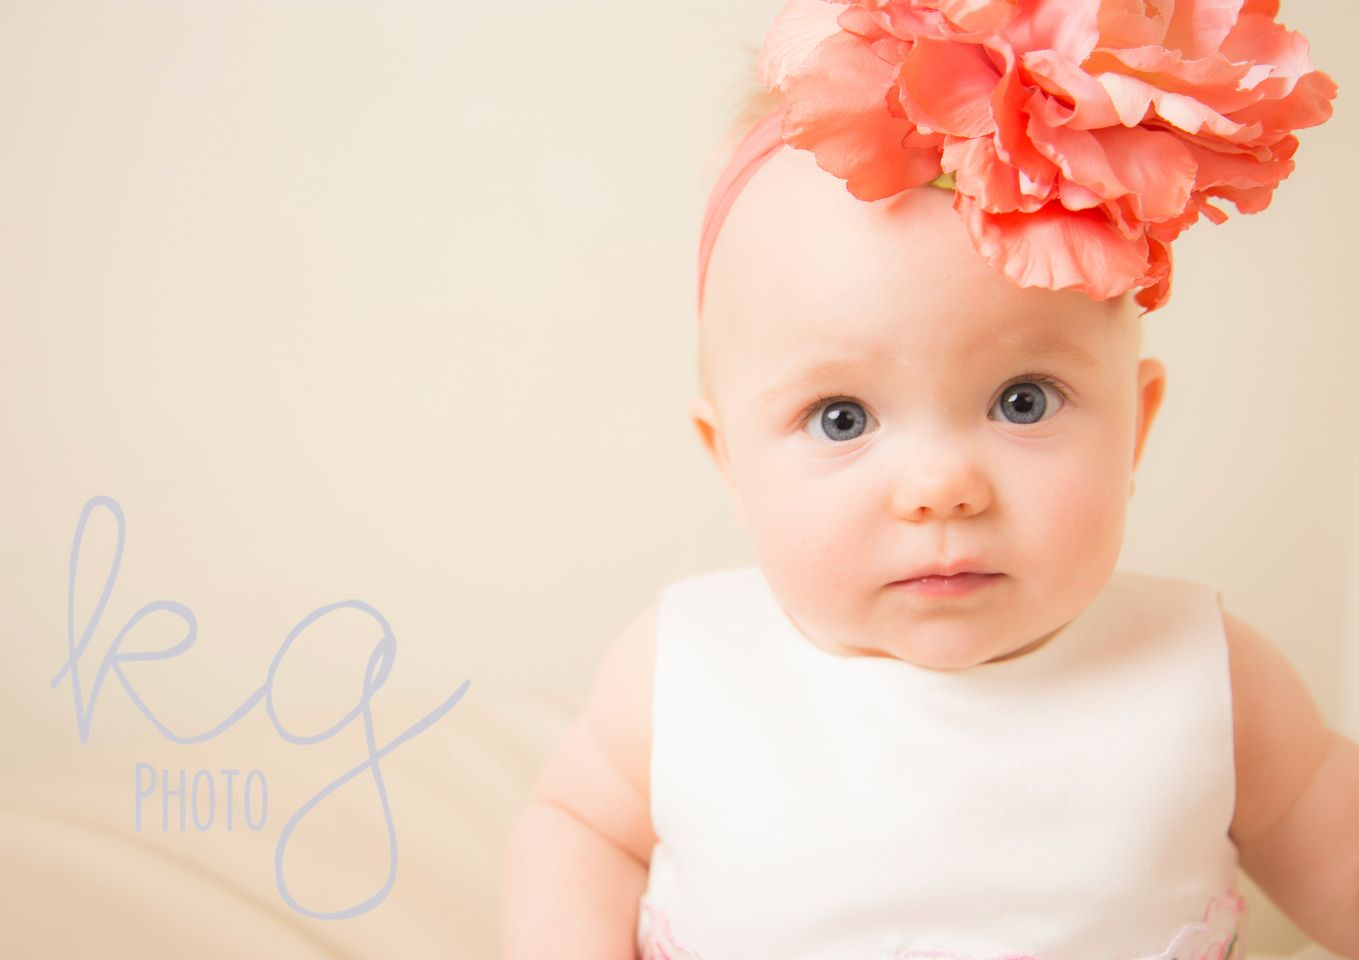 baby girl 6 months old www.kimgimsonphotography.com